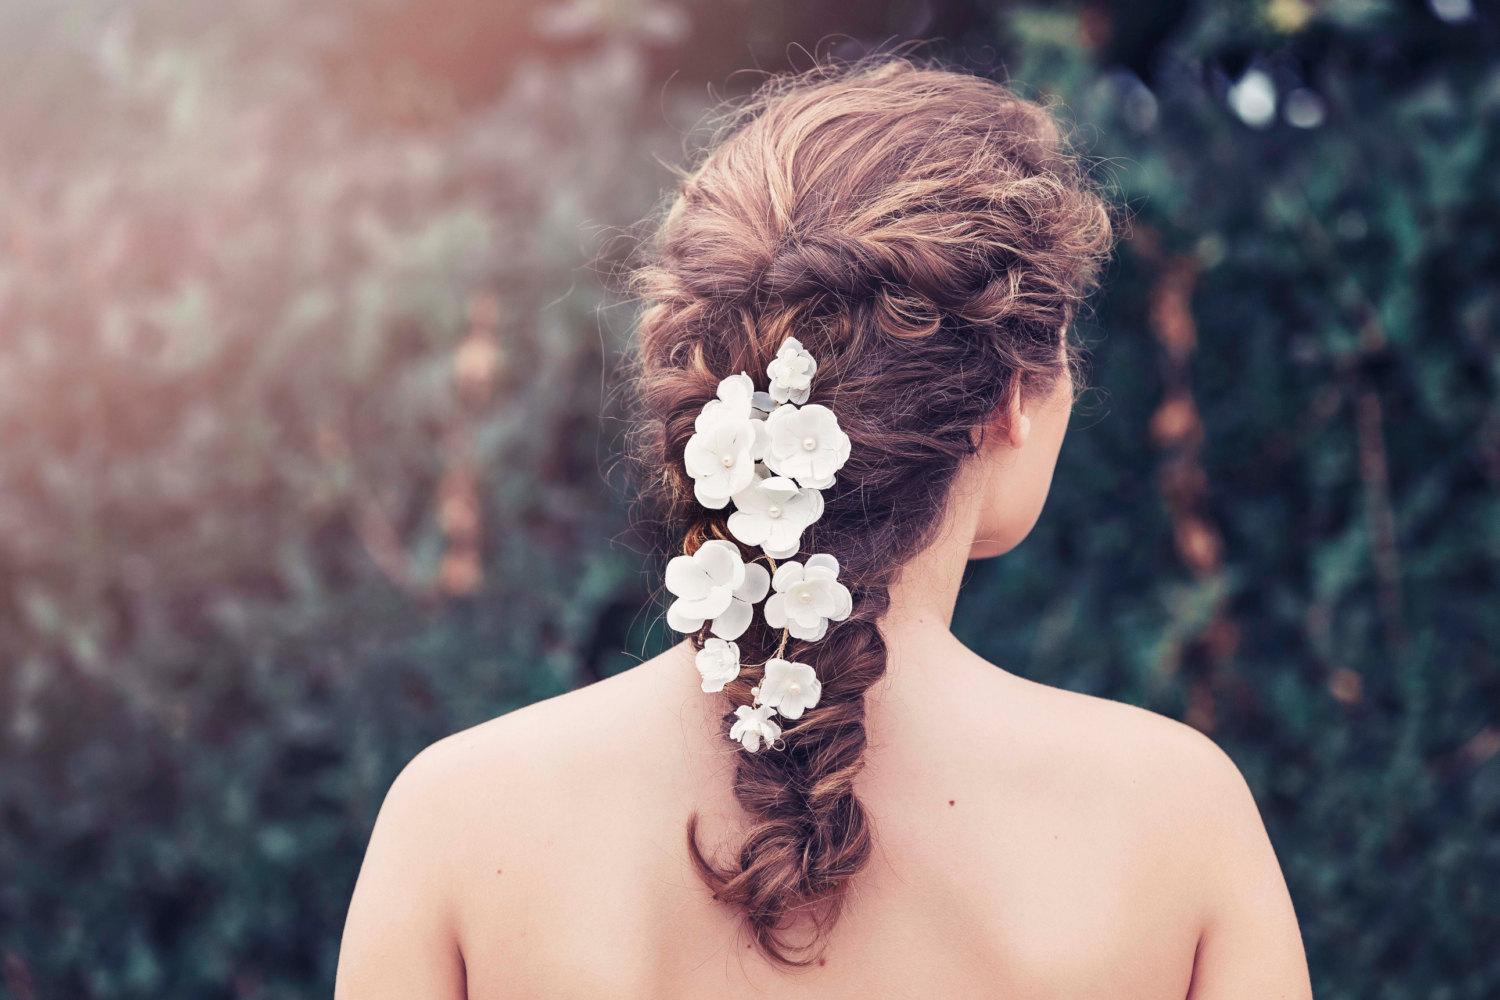 Bridal hair vines for weddings | by Gadegaard Design | photo by Tina Liv | https://emmalinebride.com/bride/bridal-hair-vines--for-weddings/